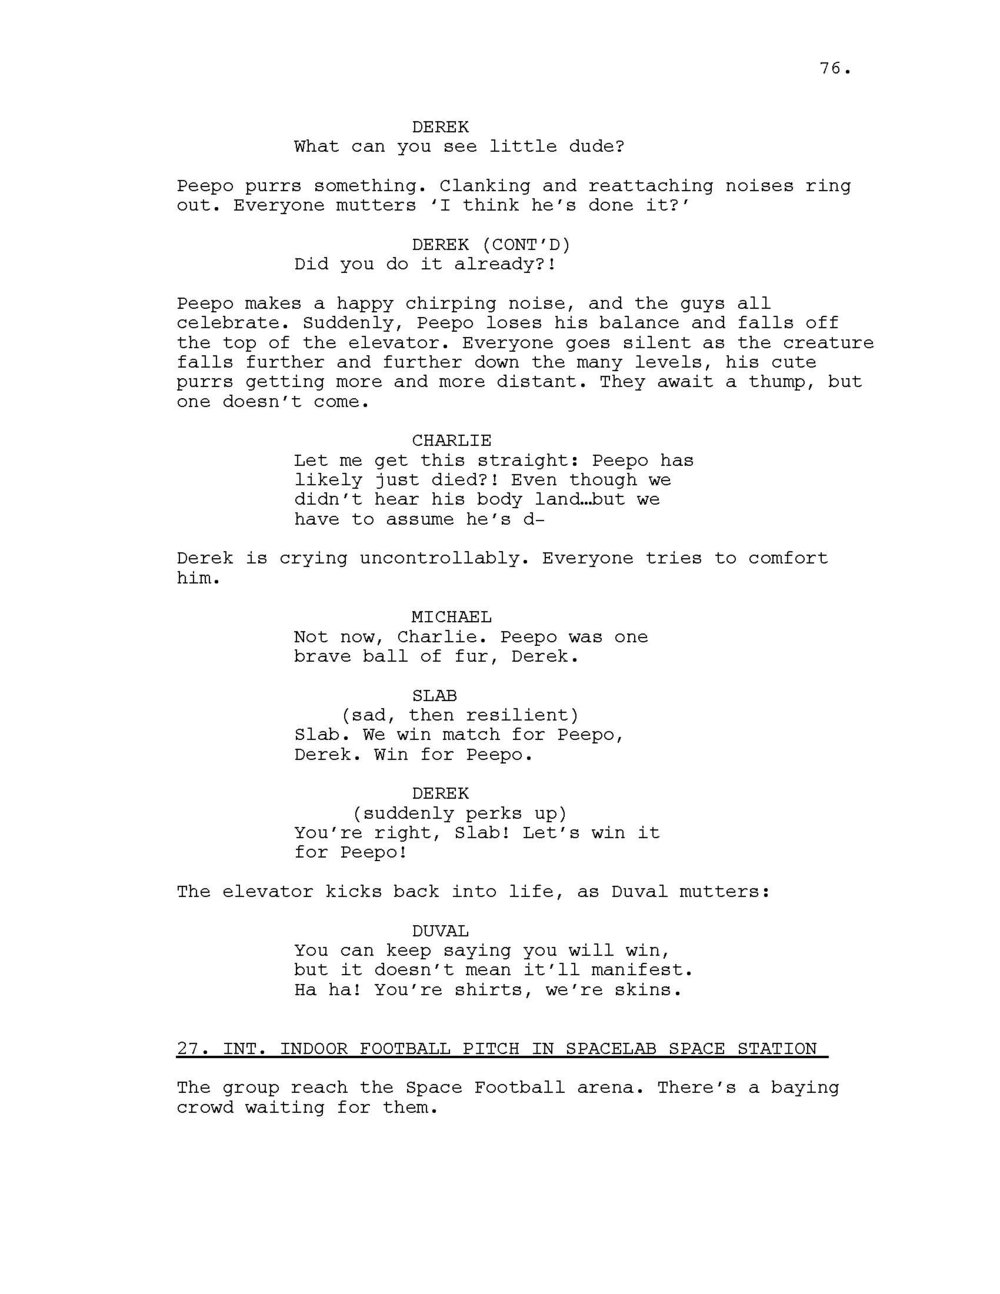 INVISIBLE WORLD SCRIPT_Page_077.jpg